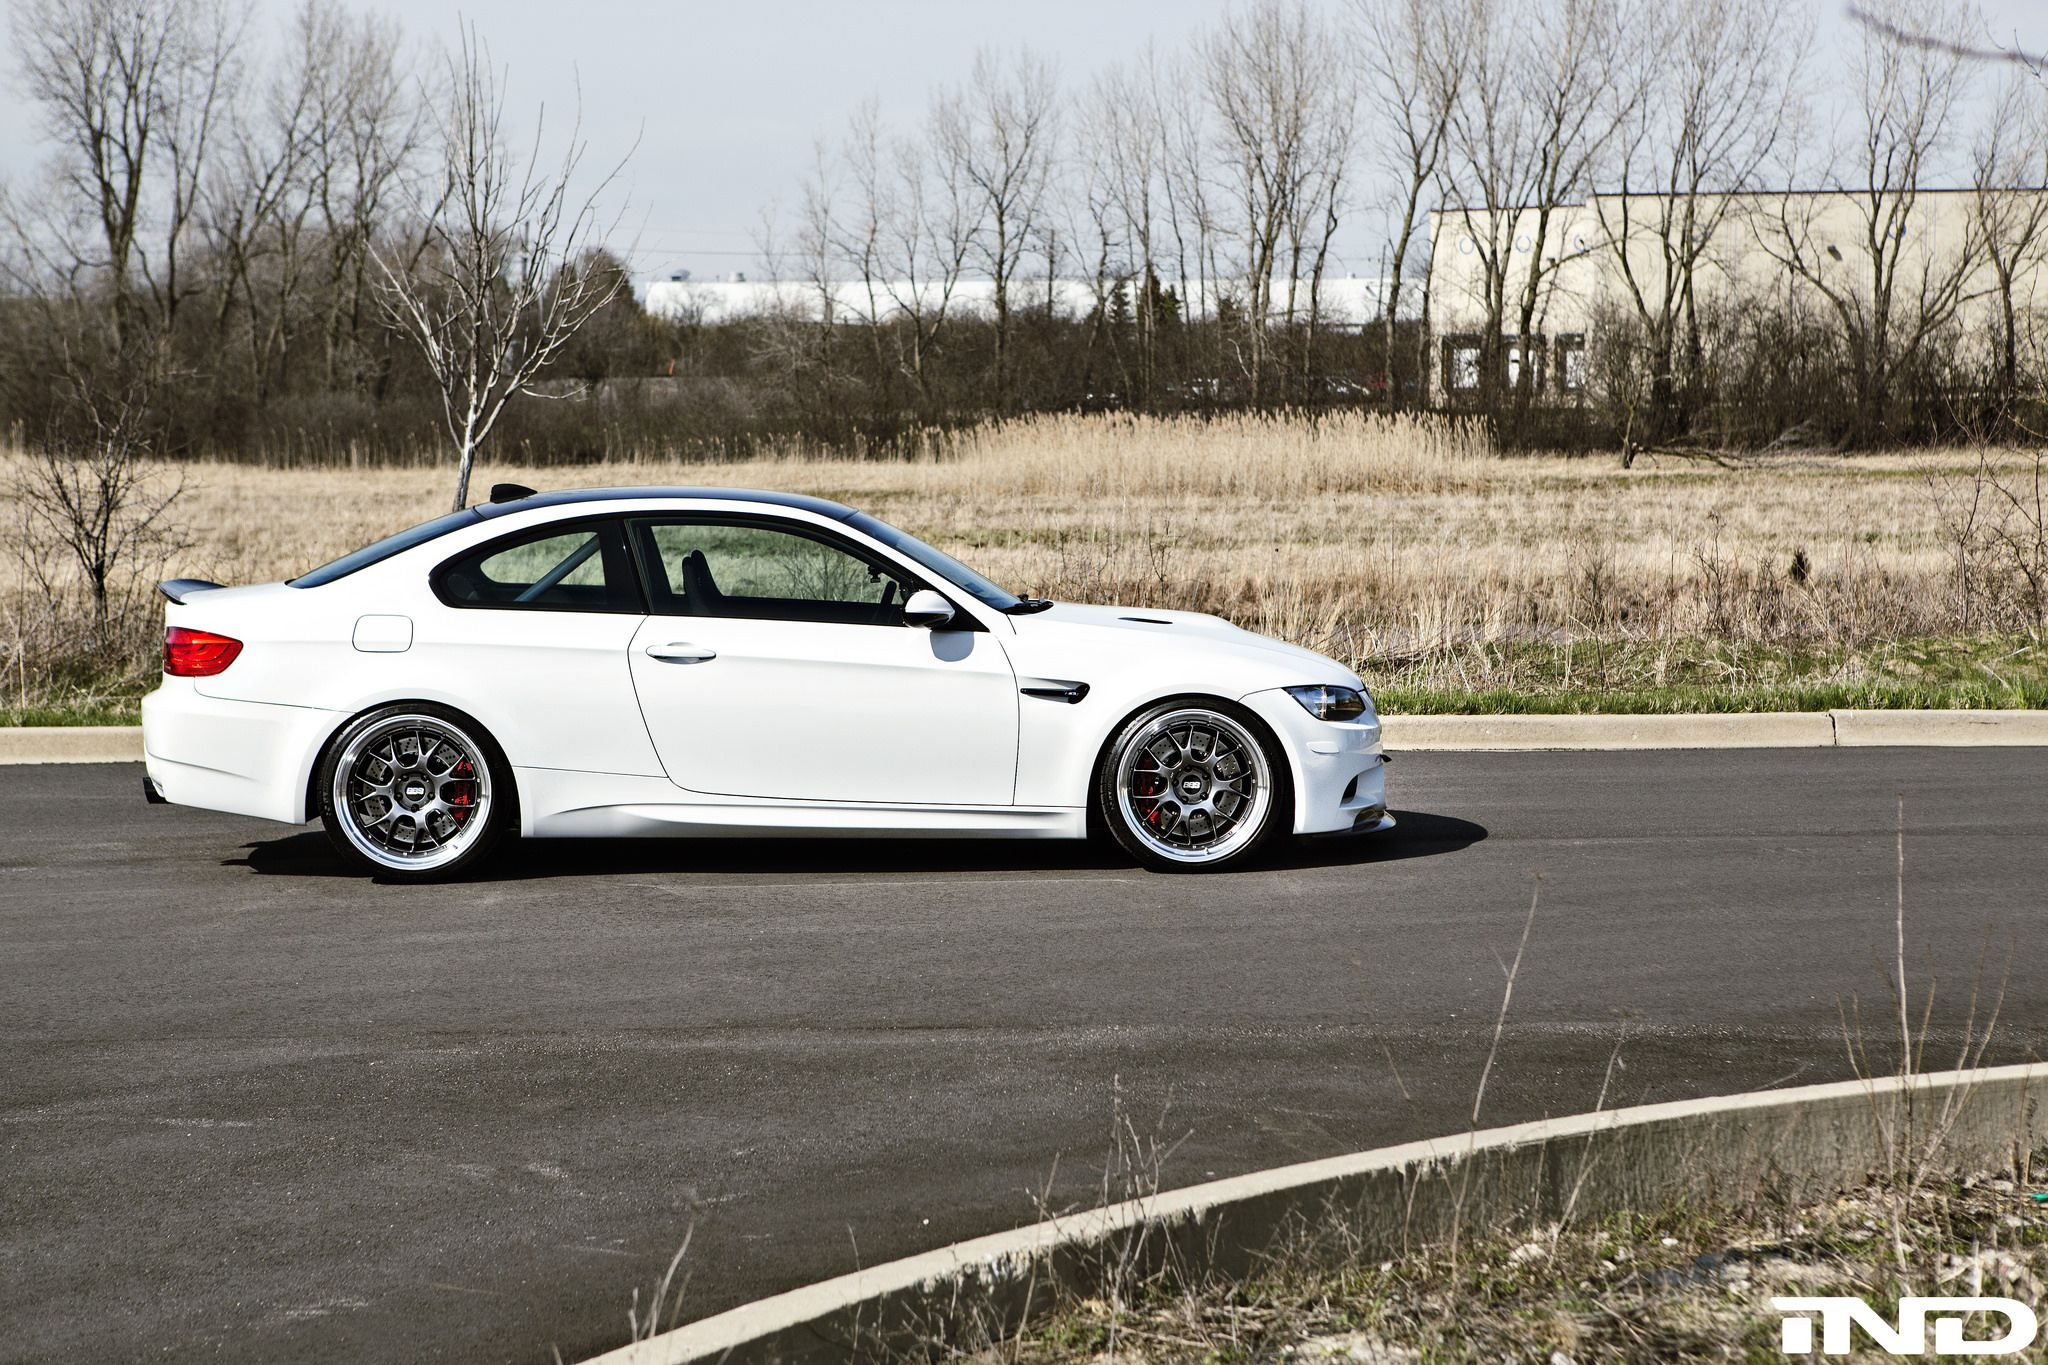 2008 E92 Bmw M3 Gt2 Widebody With Images Bmw M3 Bmw Car Tuning